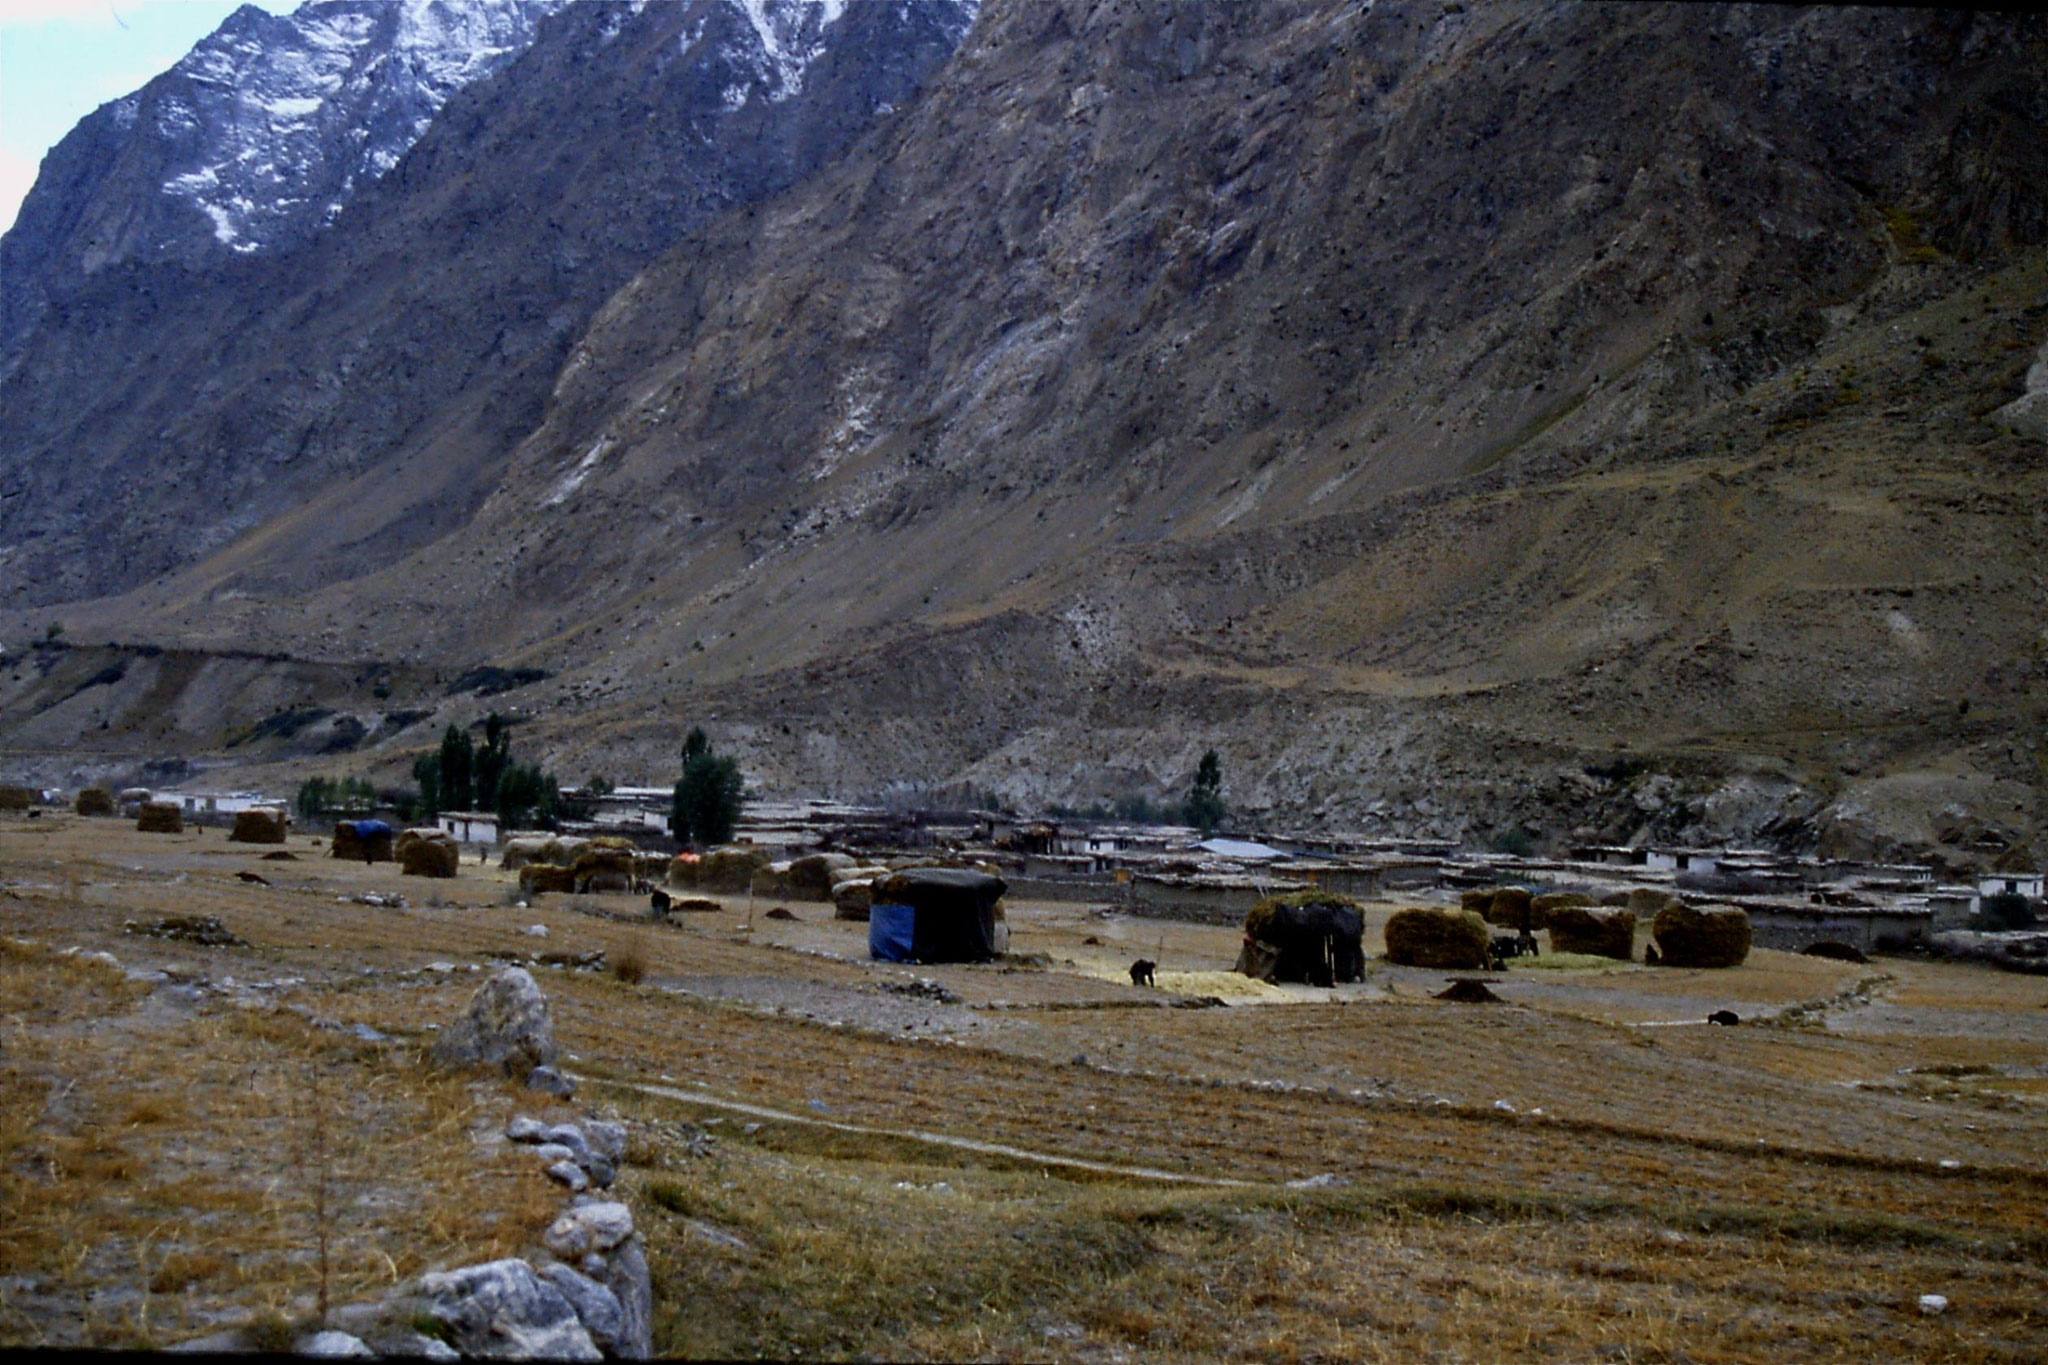 16/10/1989: 36: Hushe village and Masherbrum